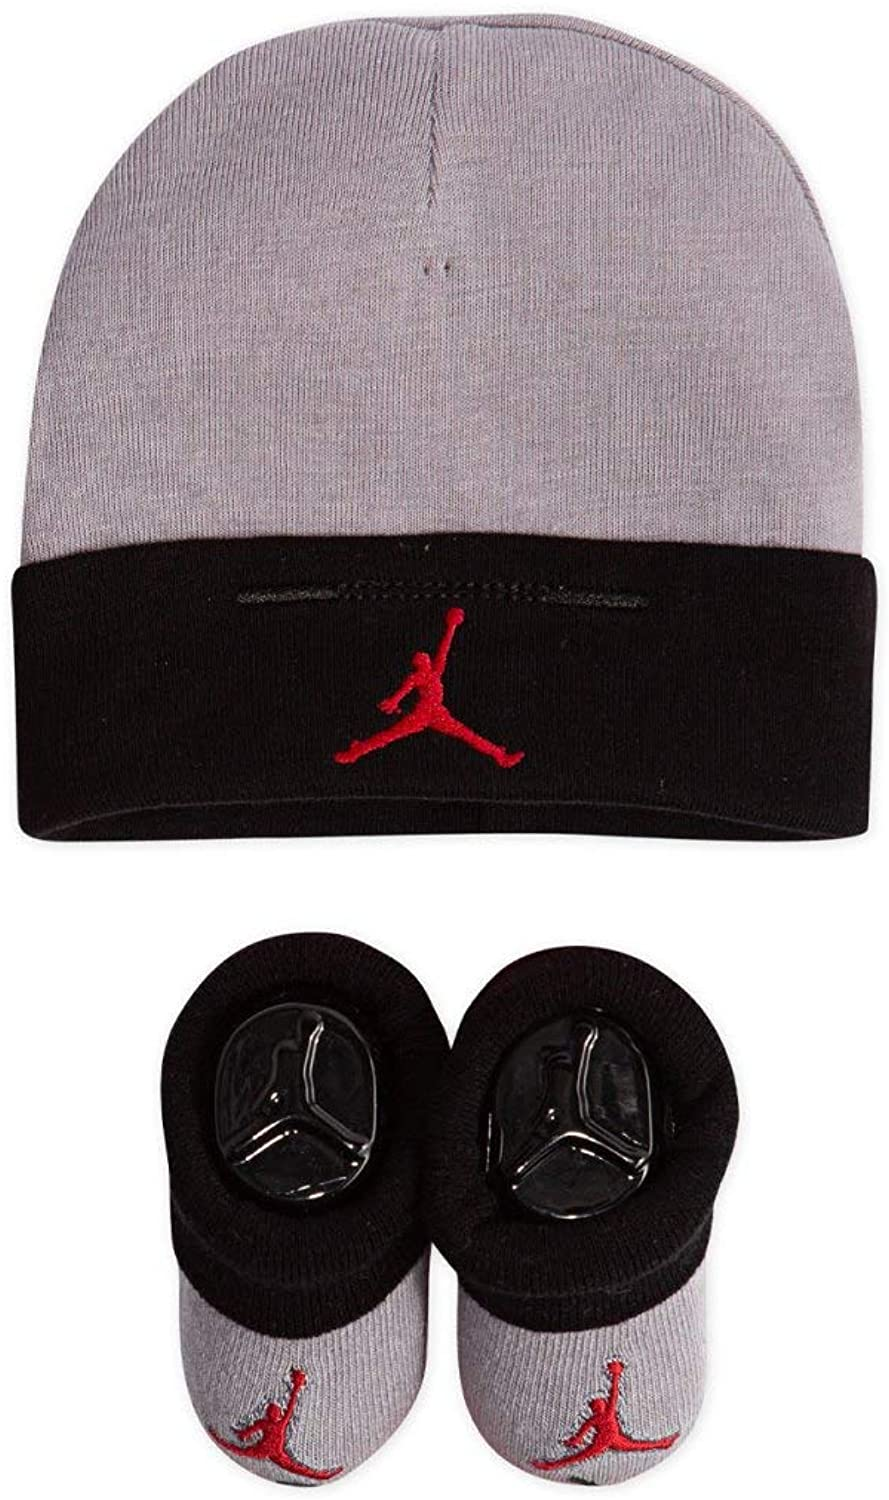 NIKE Baby Hat and Booties 2-Piece Set